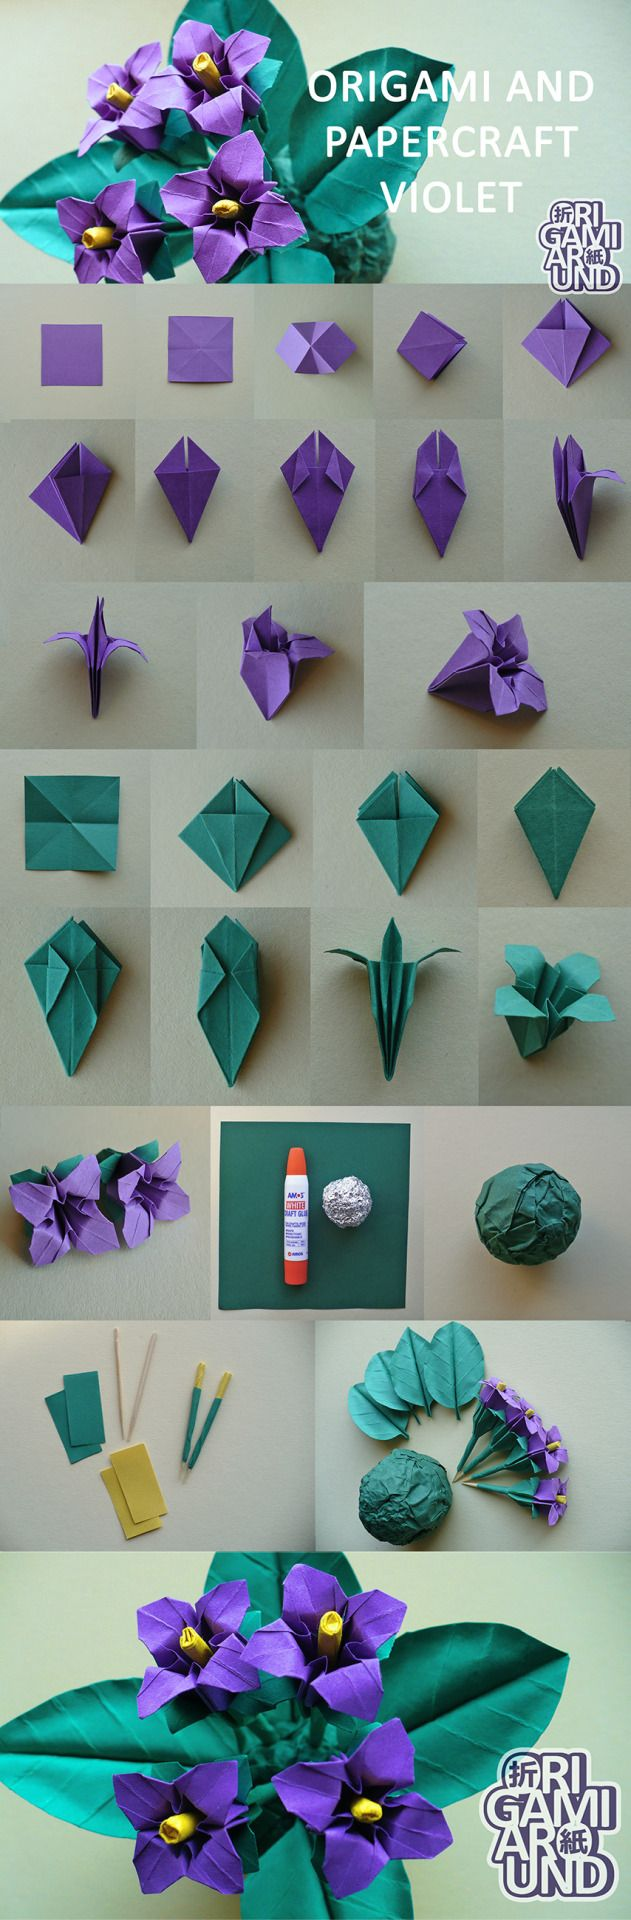 Origami and papercraft violet my older post about how i make leaves